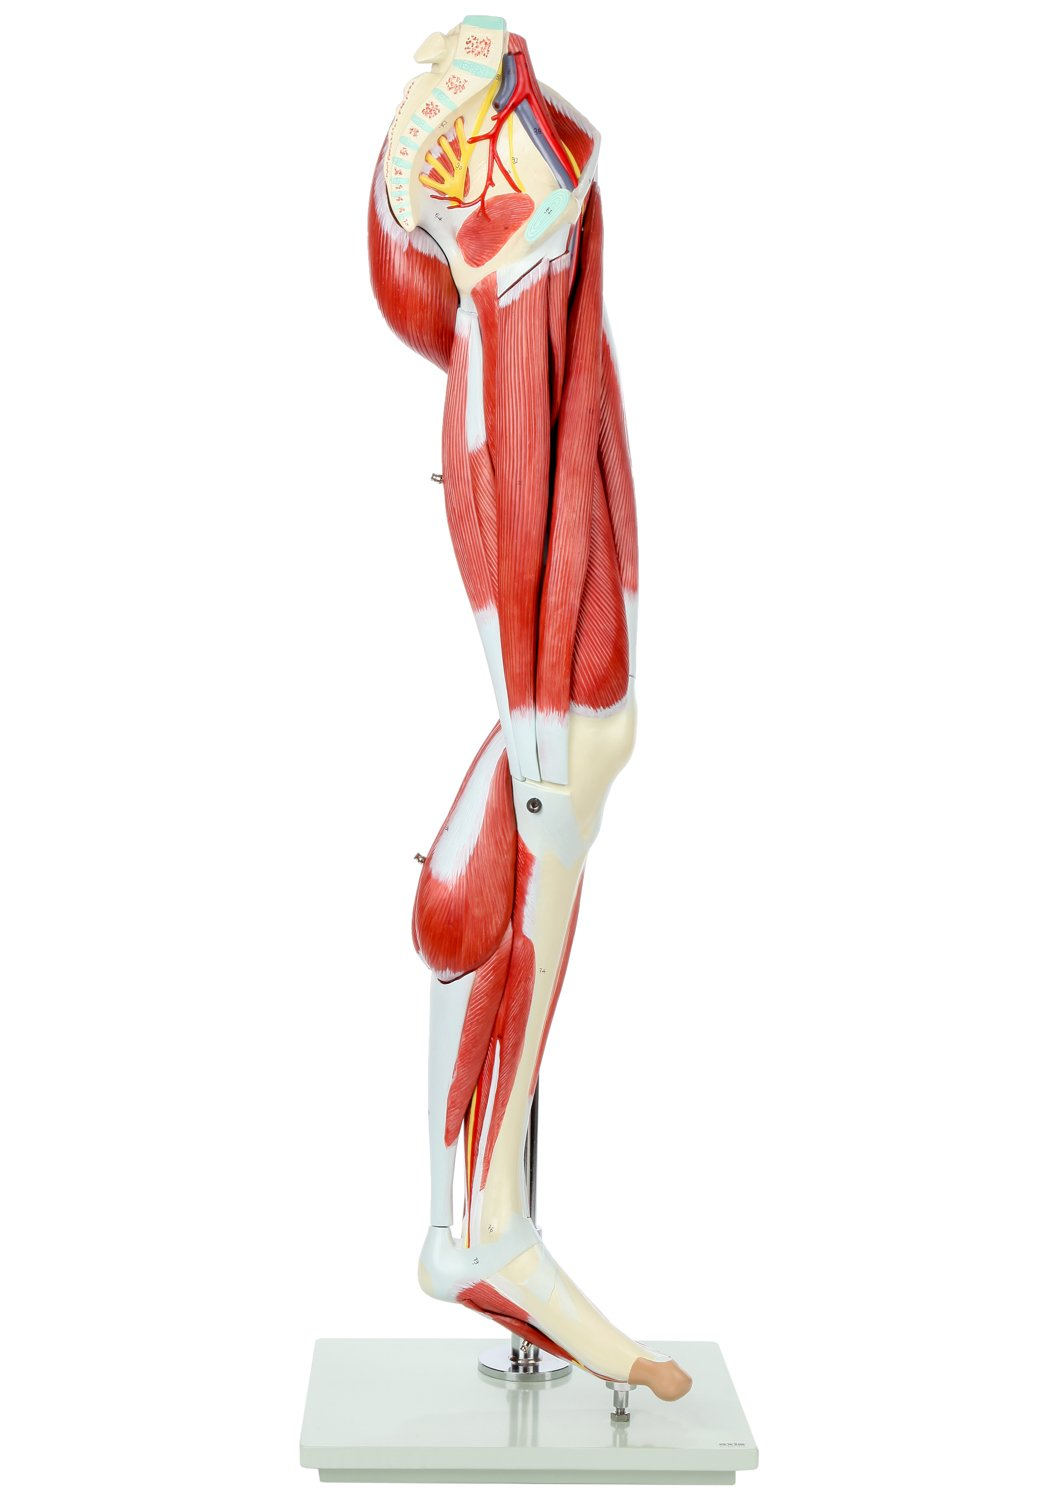 Axis Scientific Leg Model Muscle Anatomy Model Has 12 Removable